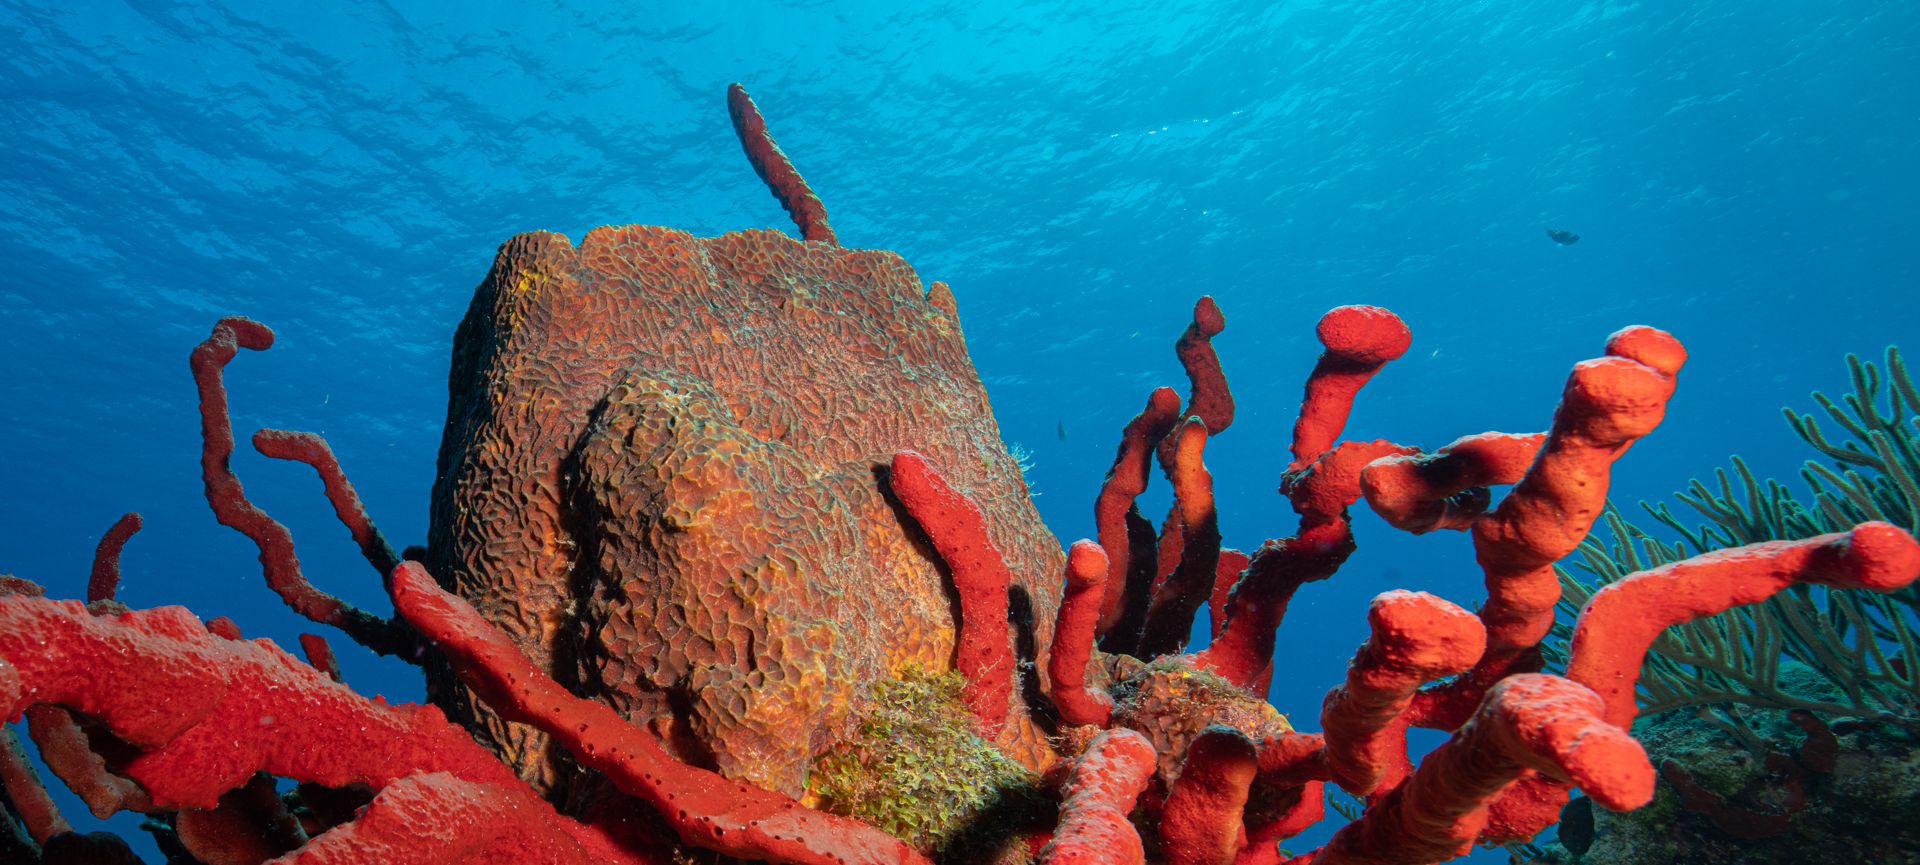 Barrel Sponge on a  Cozumel reef